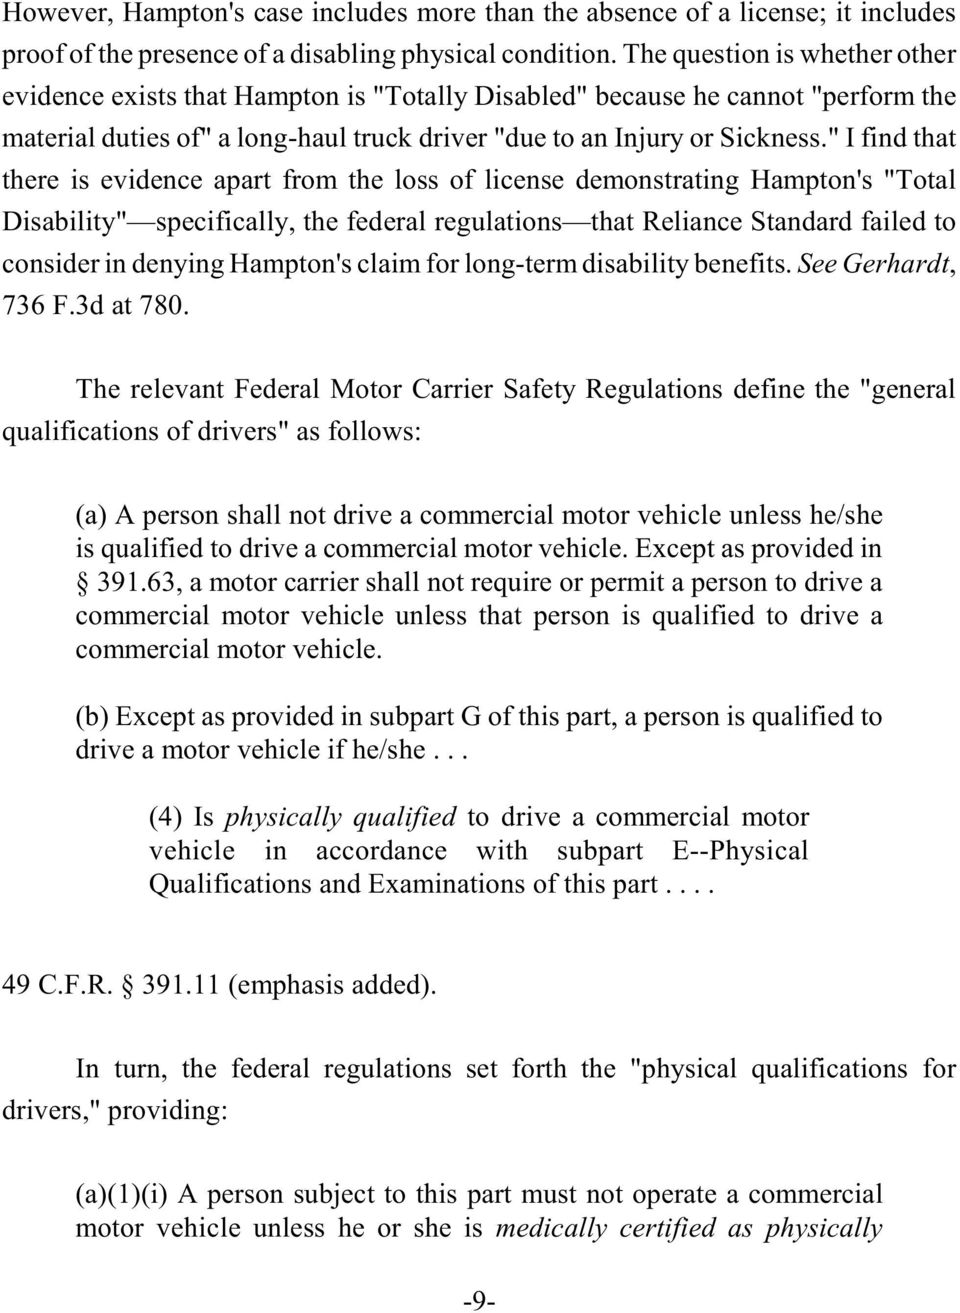 """ I find that there is evidence apart from the loss of license demonstrating Hampton's ""Total Disability"" specifically, the federal regulations that Reliance Standard failed to consider in denying"